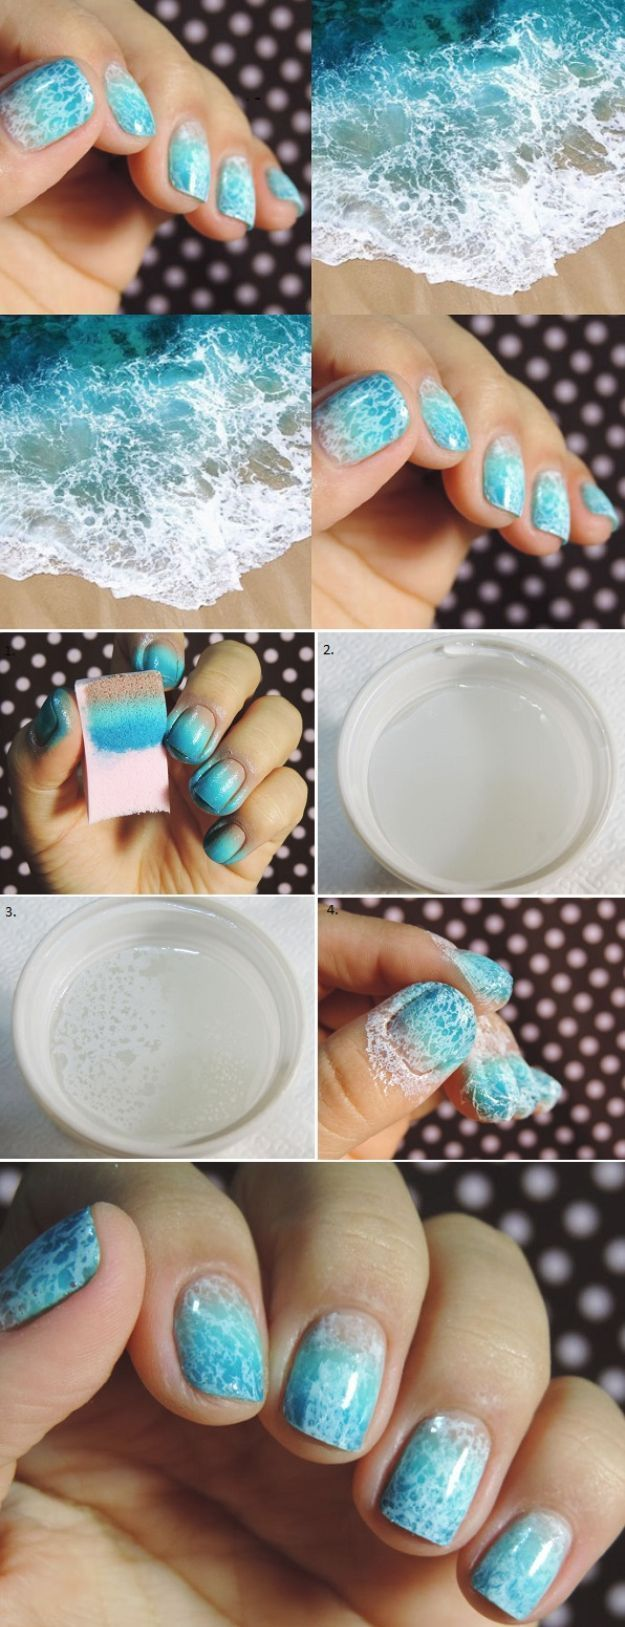 33 unbelievably cool nail art ideas manicure nail designs 33 cool nail art ideas blue and white ocean saran wrap manicure nail design tutorial prinsesfo Images